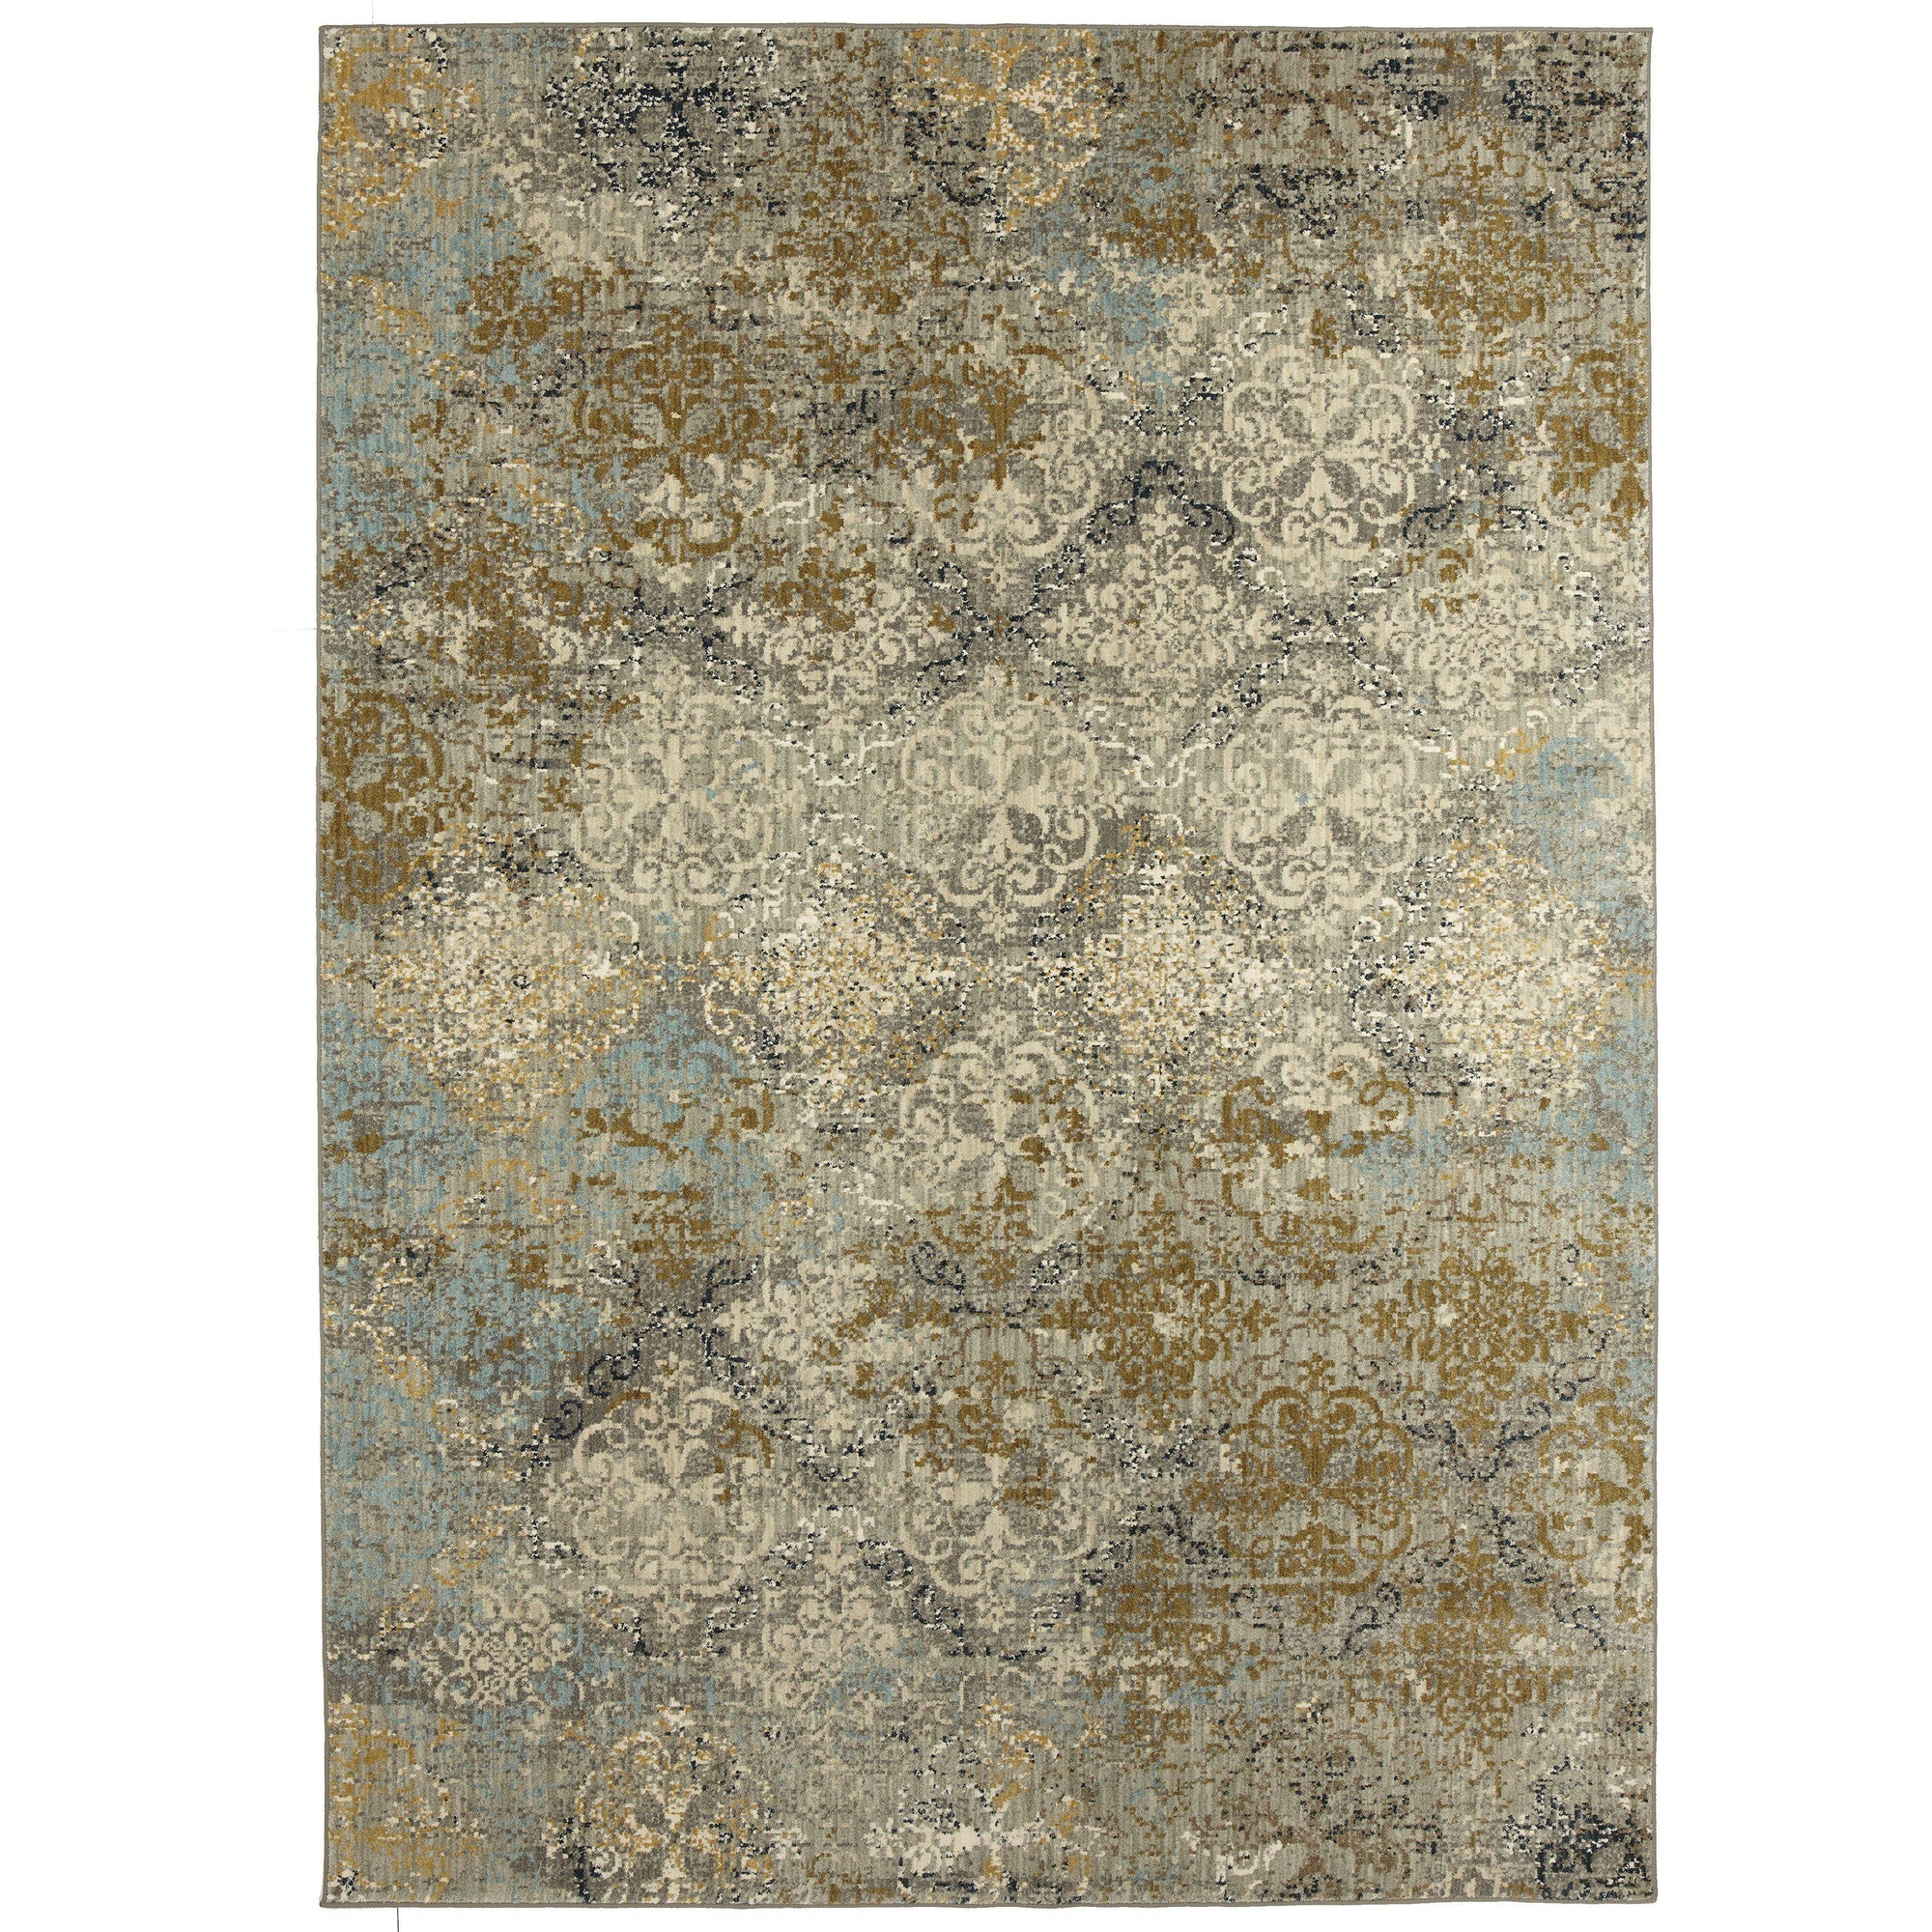 "Karastan Touchstone Moy Willow Grey-Area Rug-Karastan-3' 6""x5' 6""-The Rug Truck"